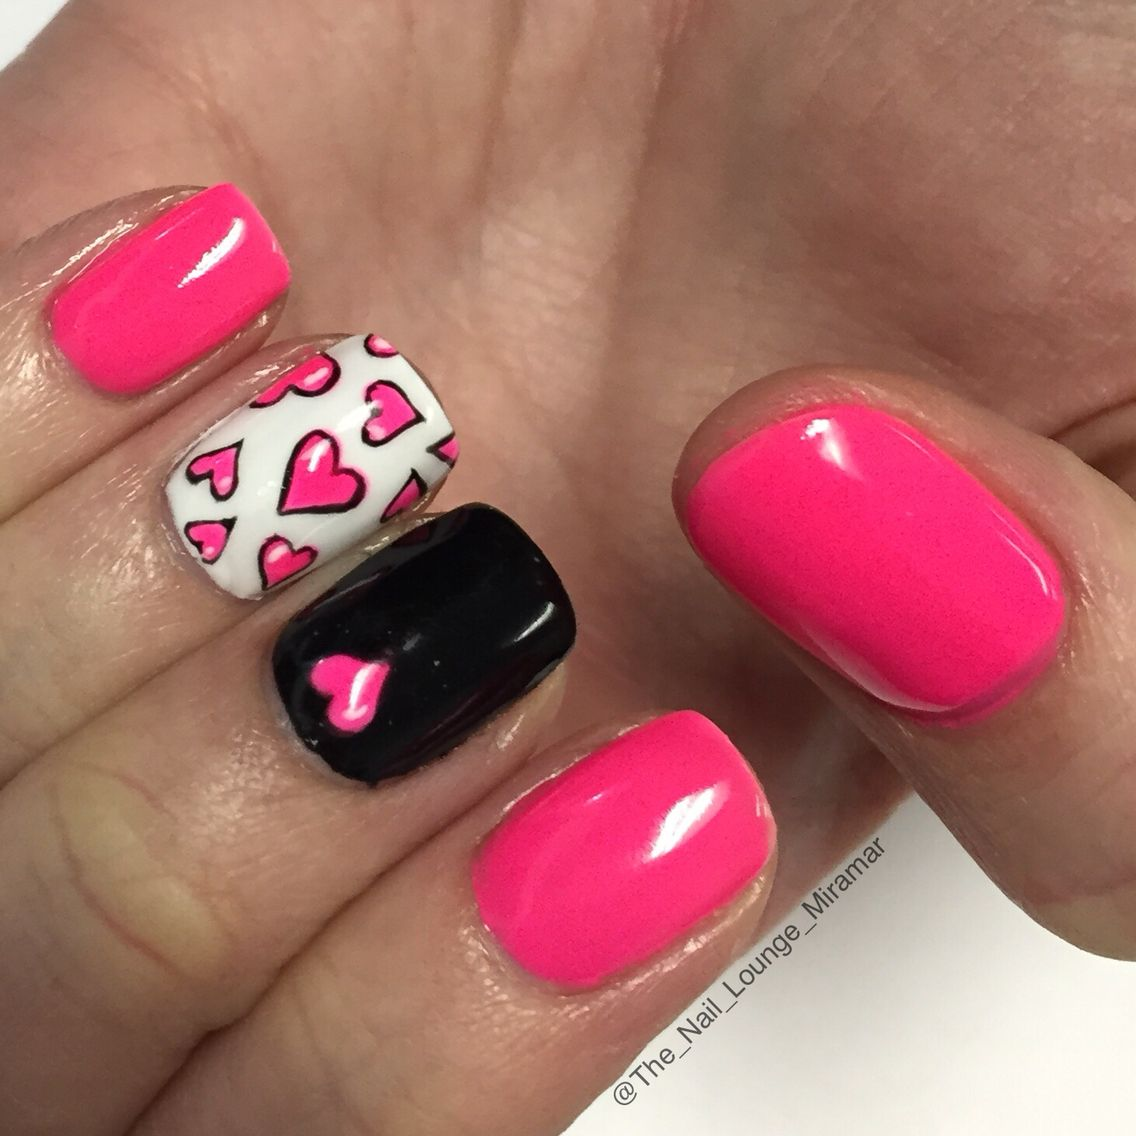 Nail Art Games For Girls Top Star Manicure Salon By Milos: Valentine's Day Heart Nail Art Design